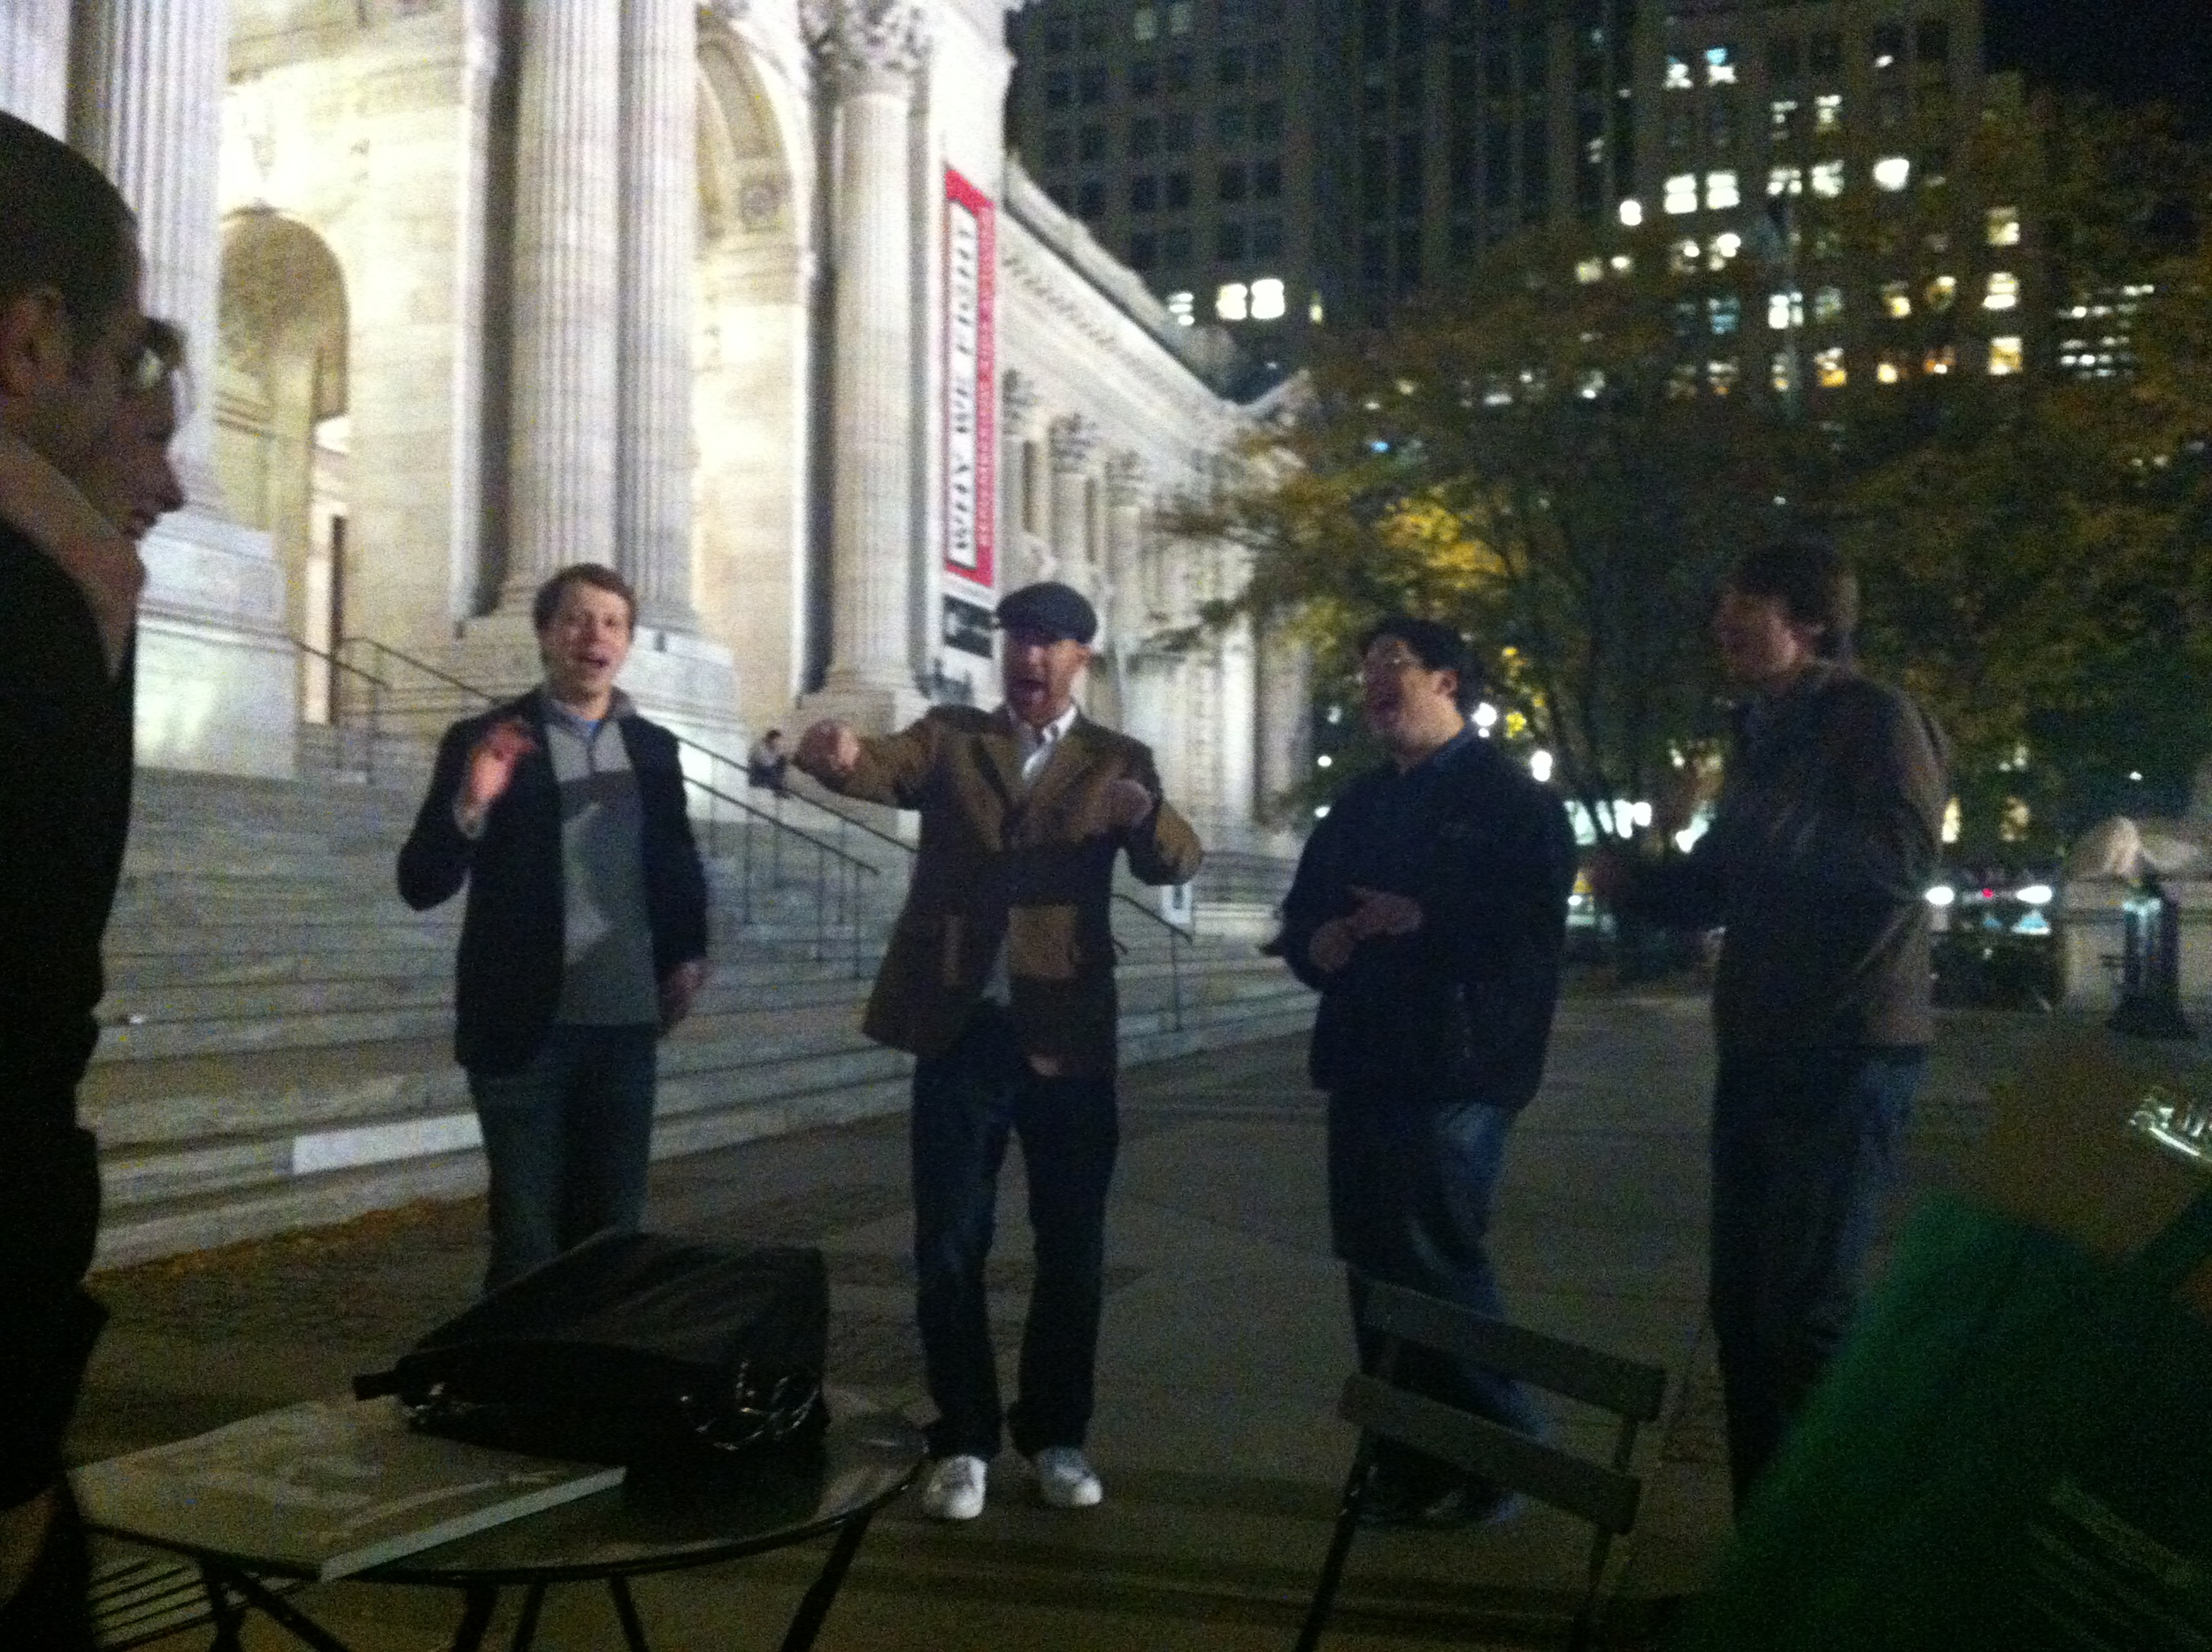 Singing at Bryant Park for a Pop Up Wedding Proposal